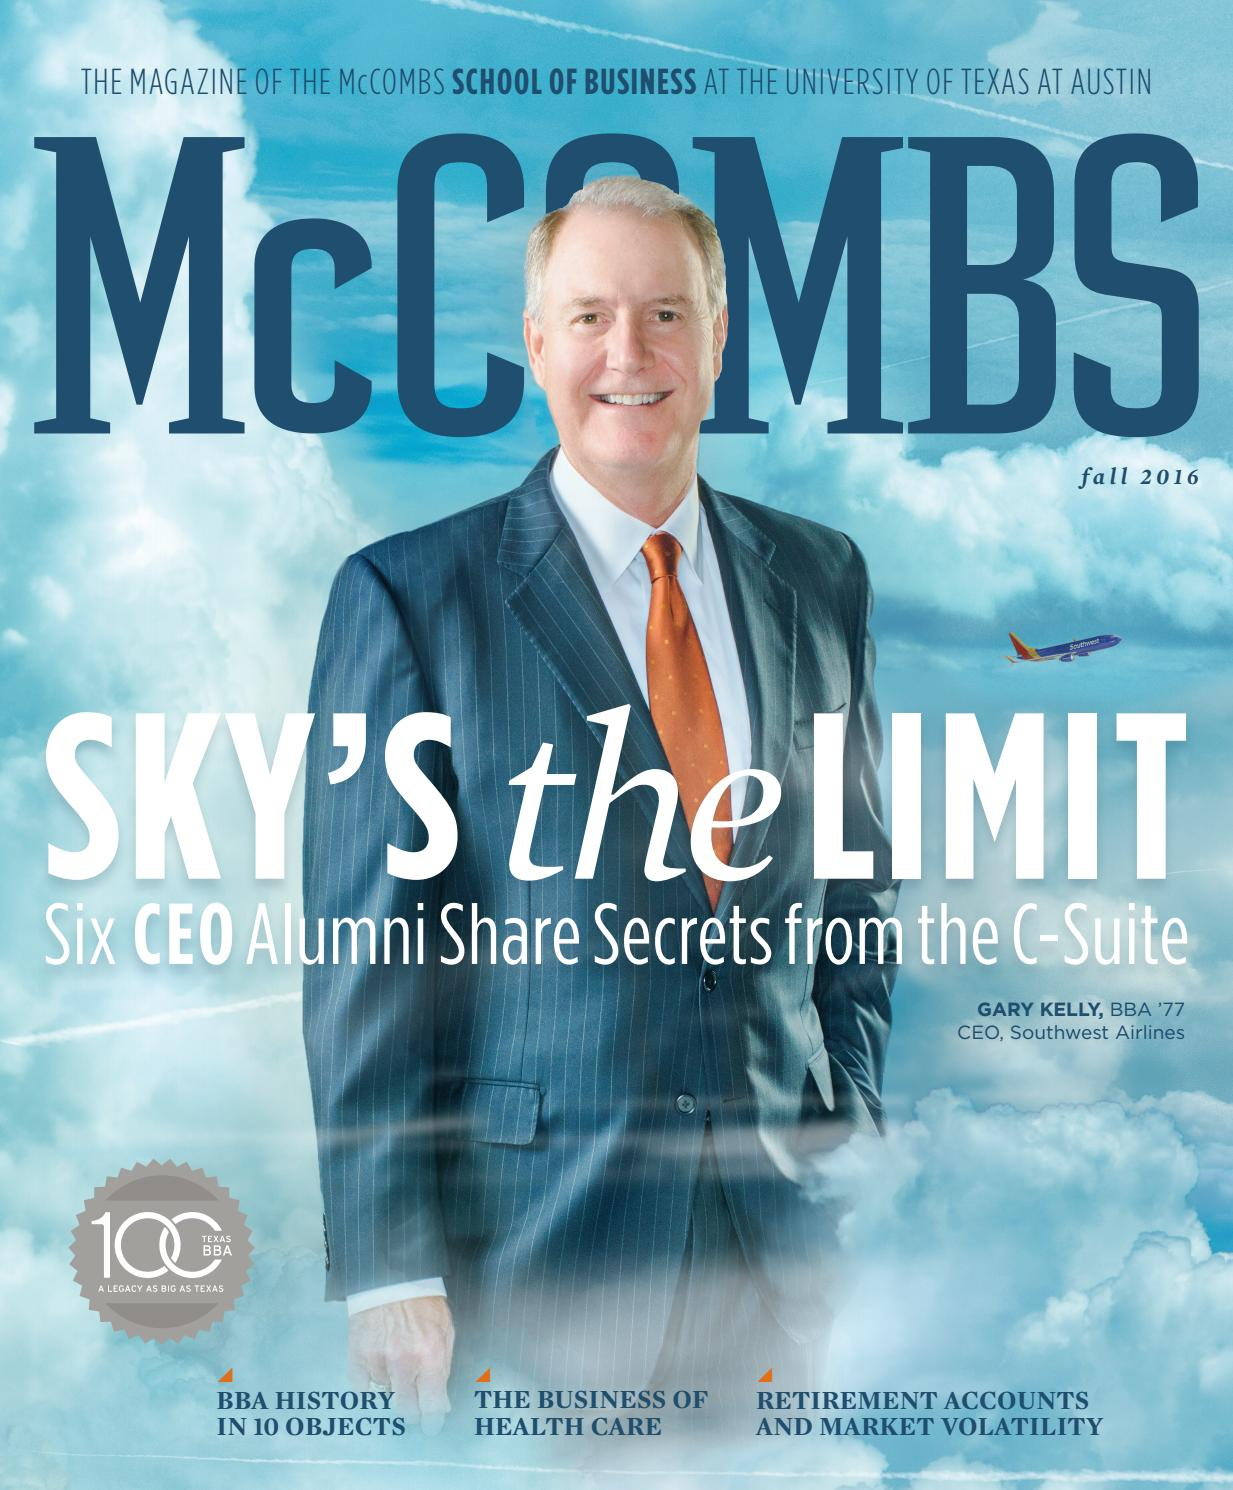 McCombs Magazine Fall 2016 By School Of Business